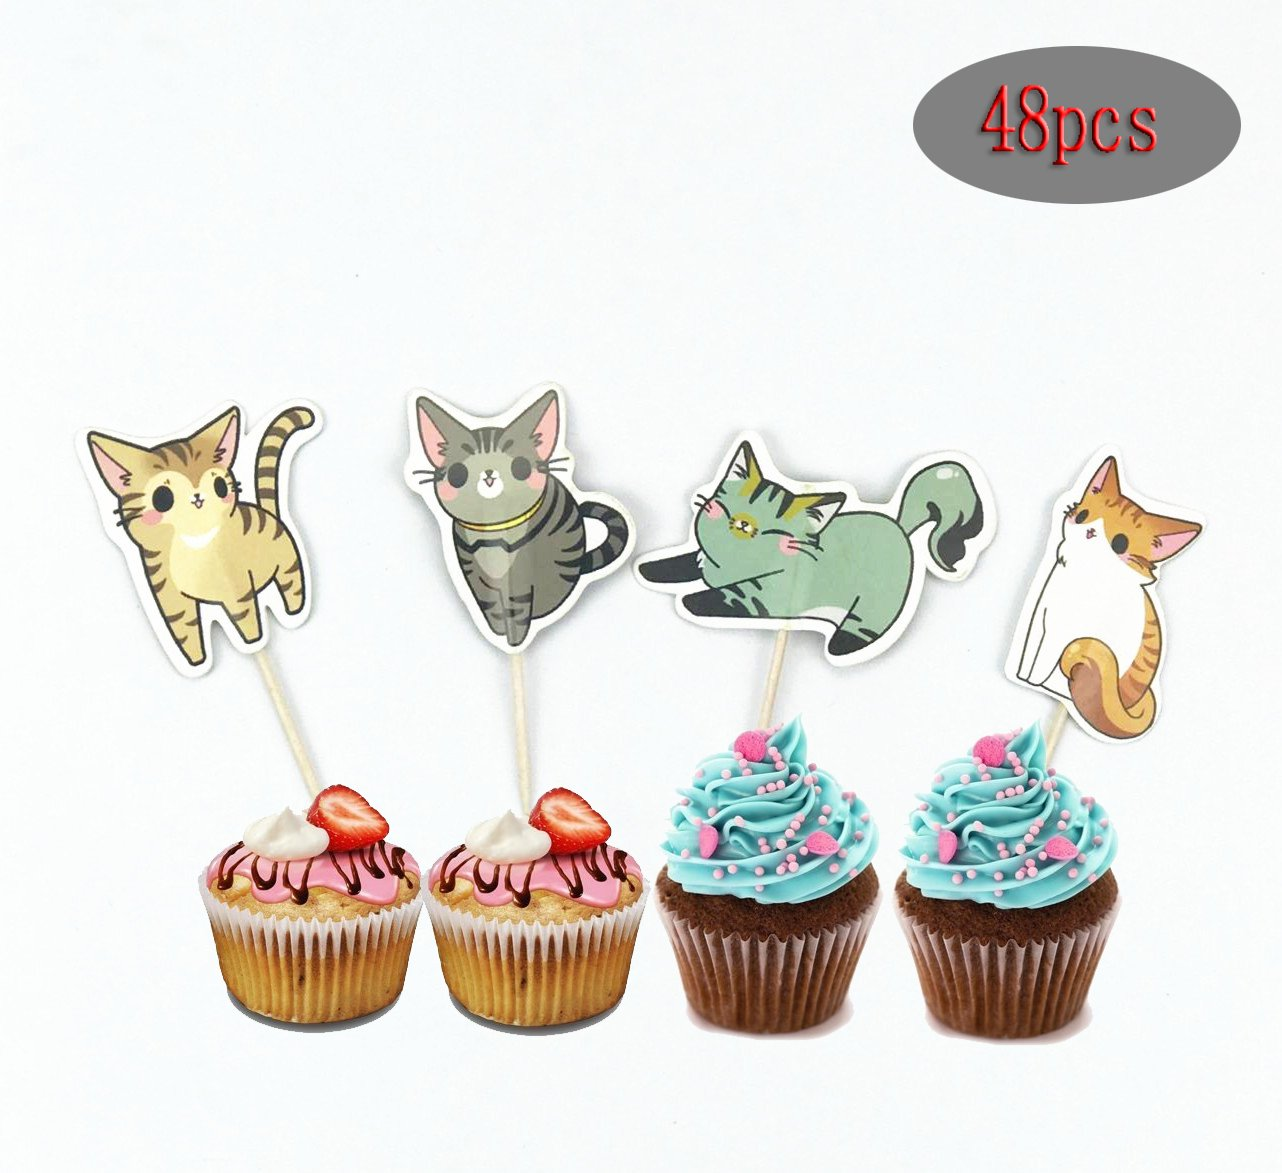 (Pack of 48)Cute Cat Cake Cupcake Toppers Picks for Wedding Birthday Baby Shower Party Decorations PalkSky